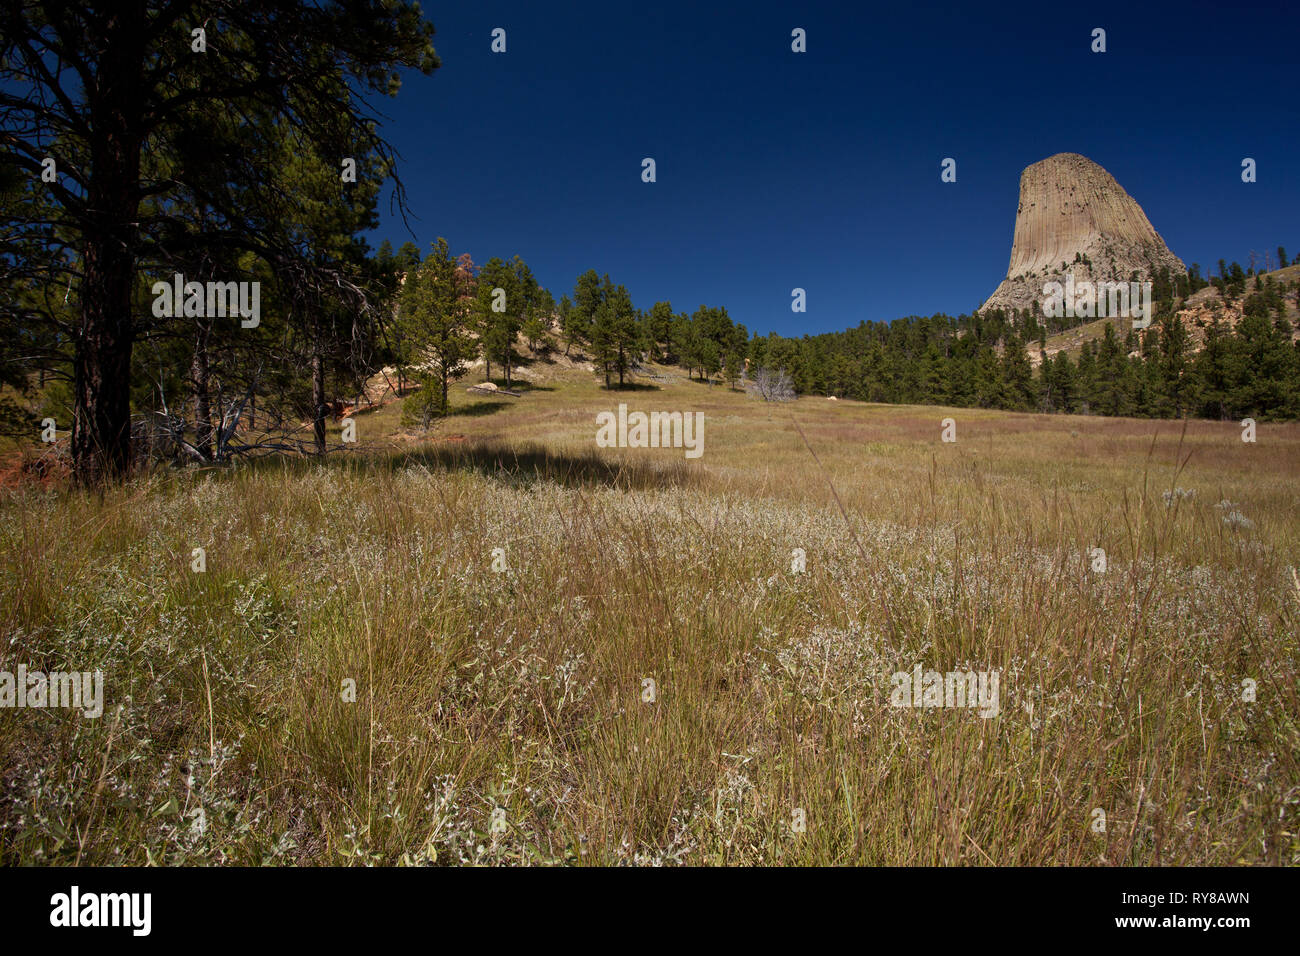 Devil's Tower National Monument, Crook County, Wyoming, USA - Stock Image